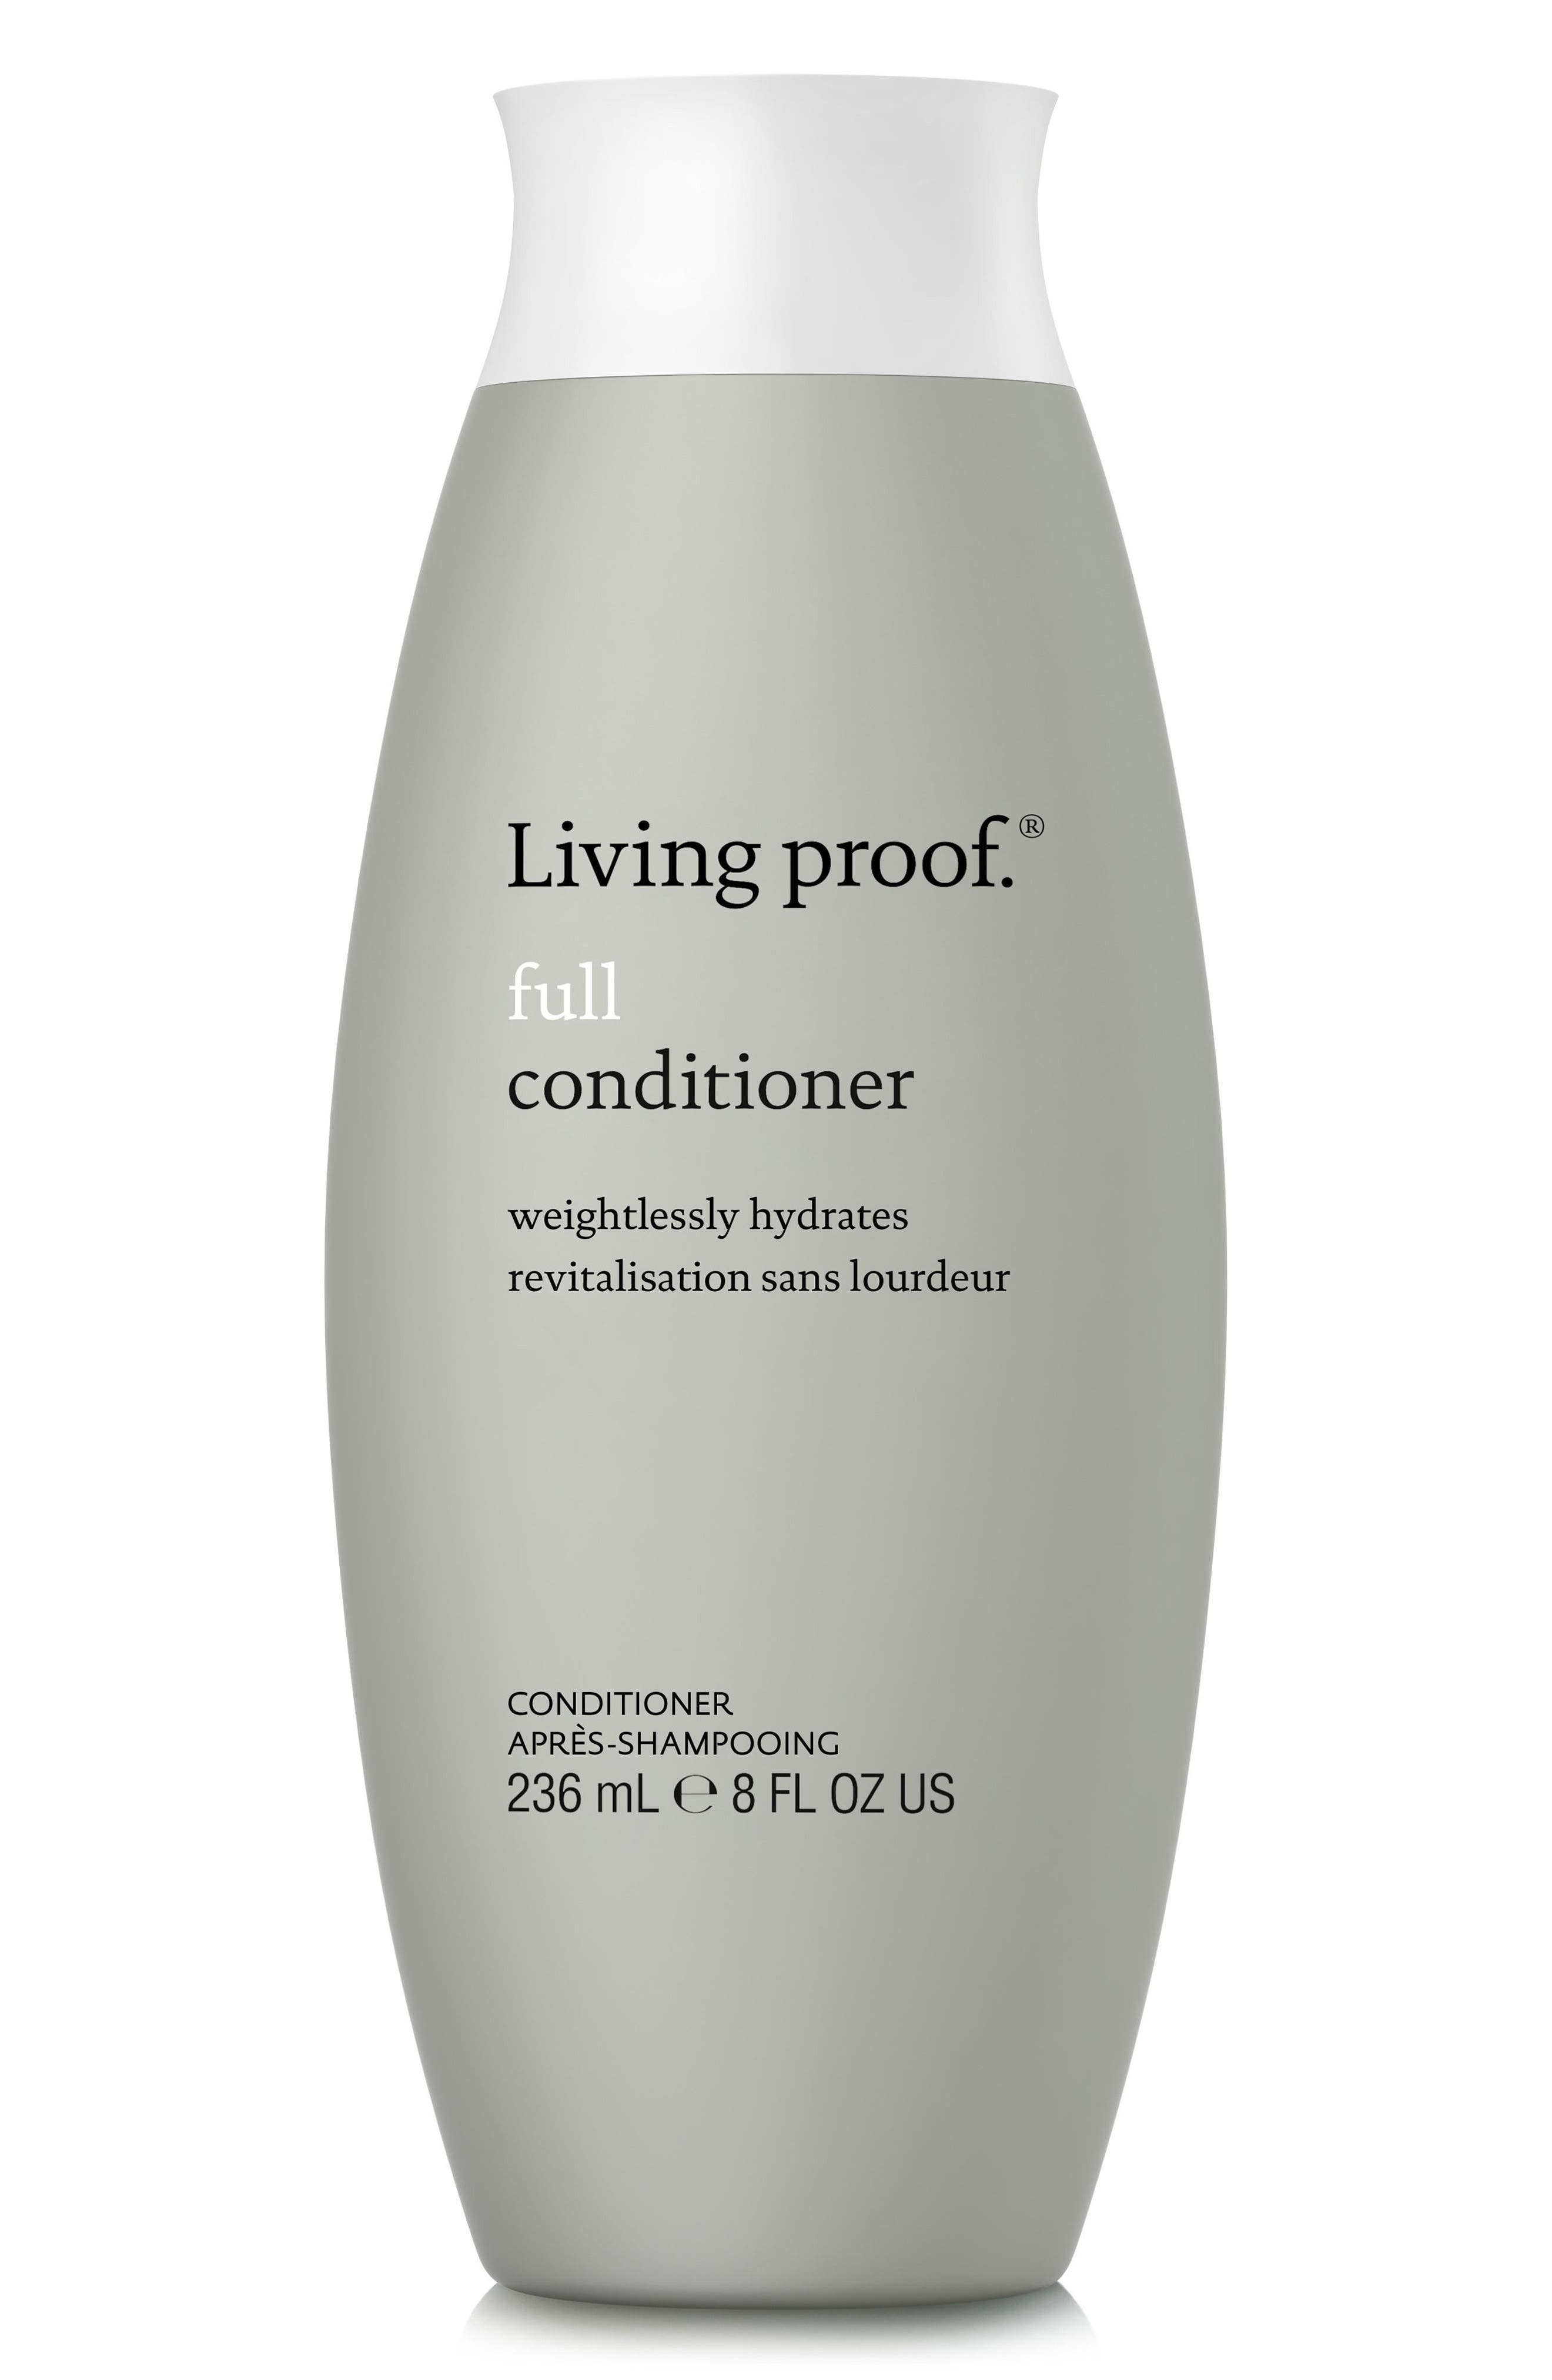 Alternate Image 1 Selected - Living proof® Full Conditioner